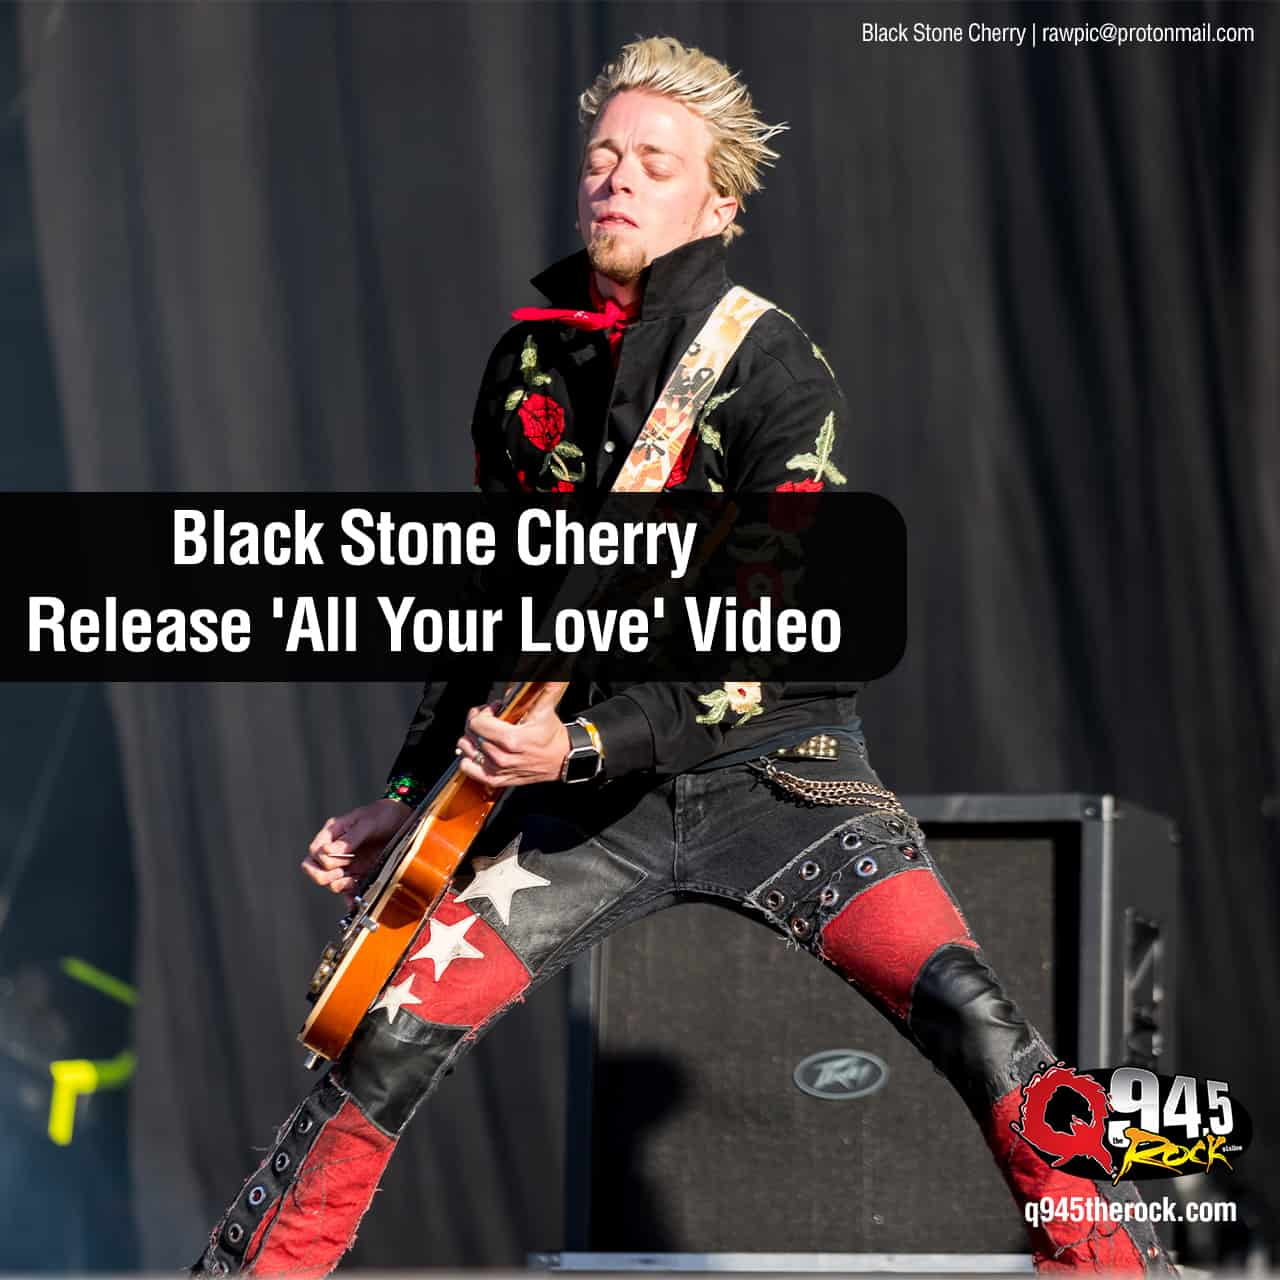 Black Stone Cherry Release 'All Your Love' Video